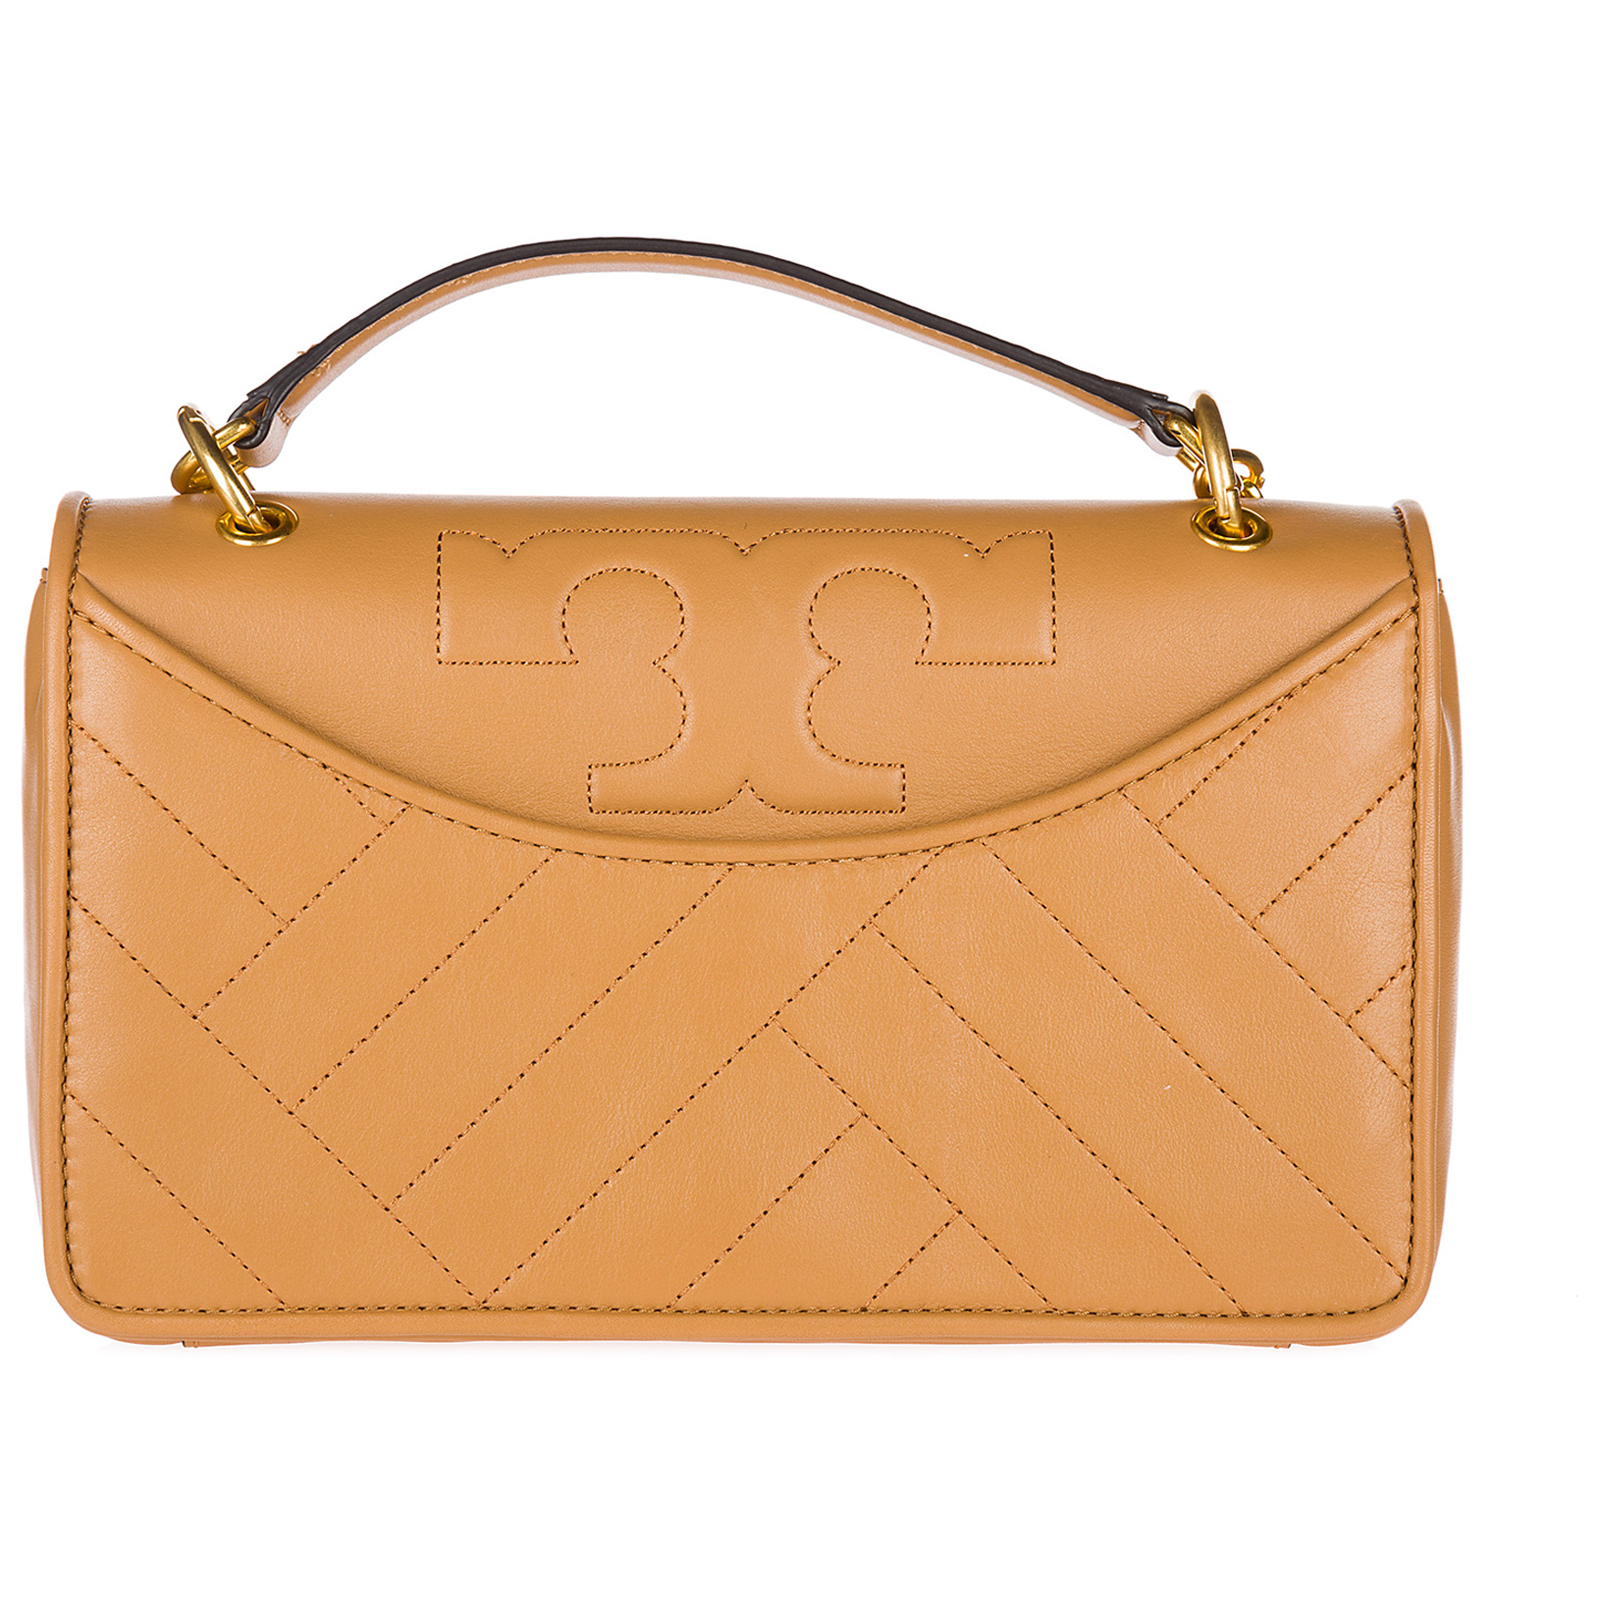 fc91d8a89803 Shoulder bag Tory Burch 43088 aged vachetta